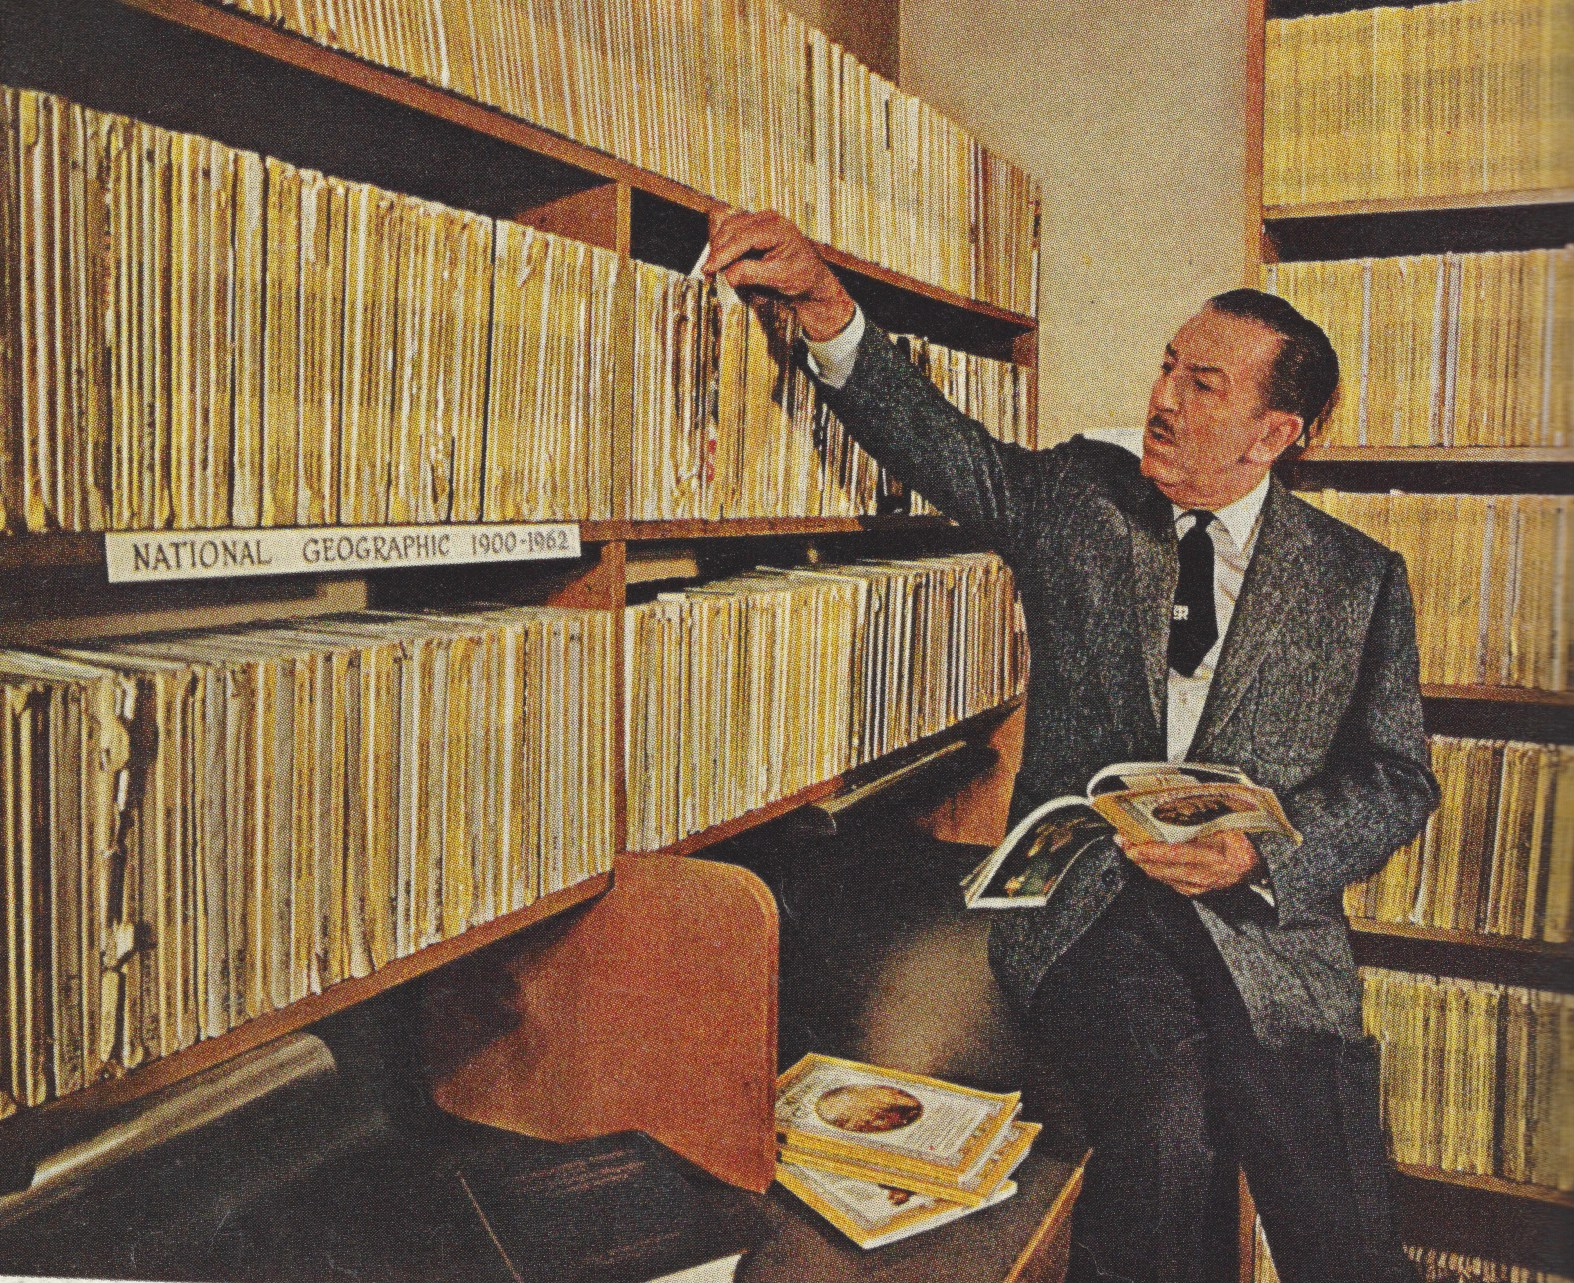 Walt Disney's National Geographic Library